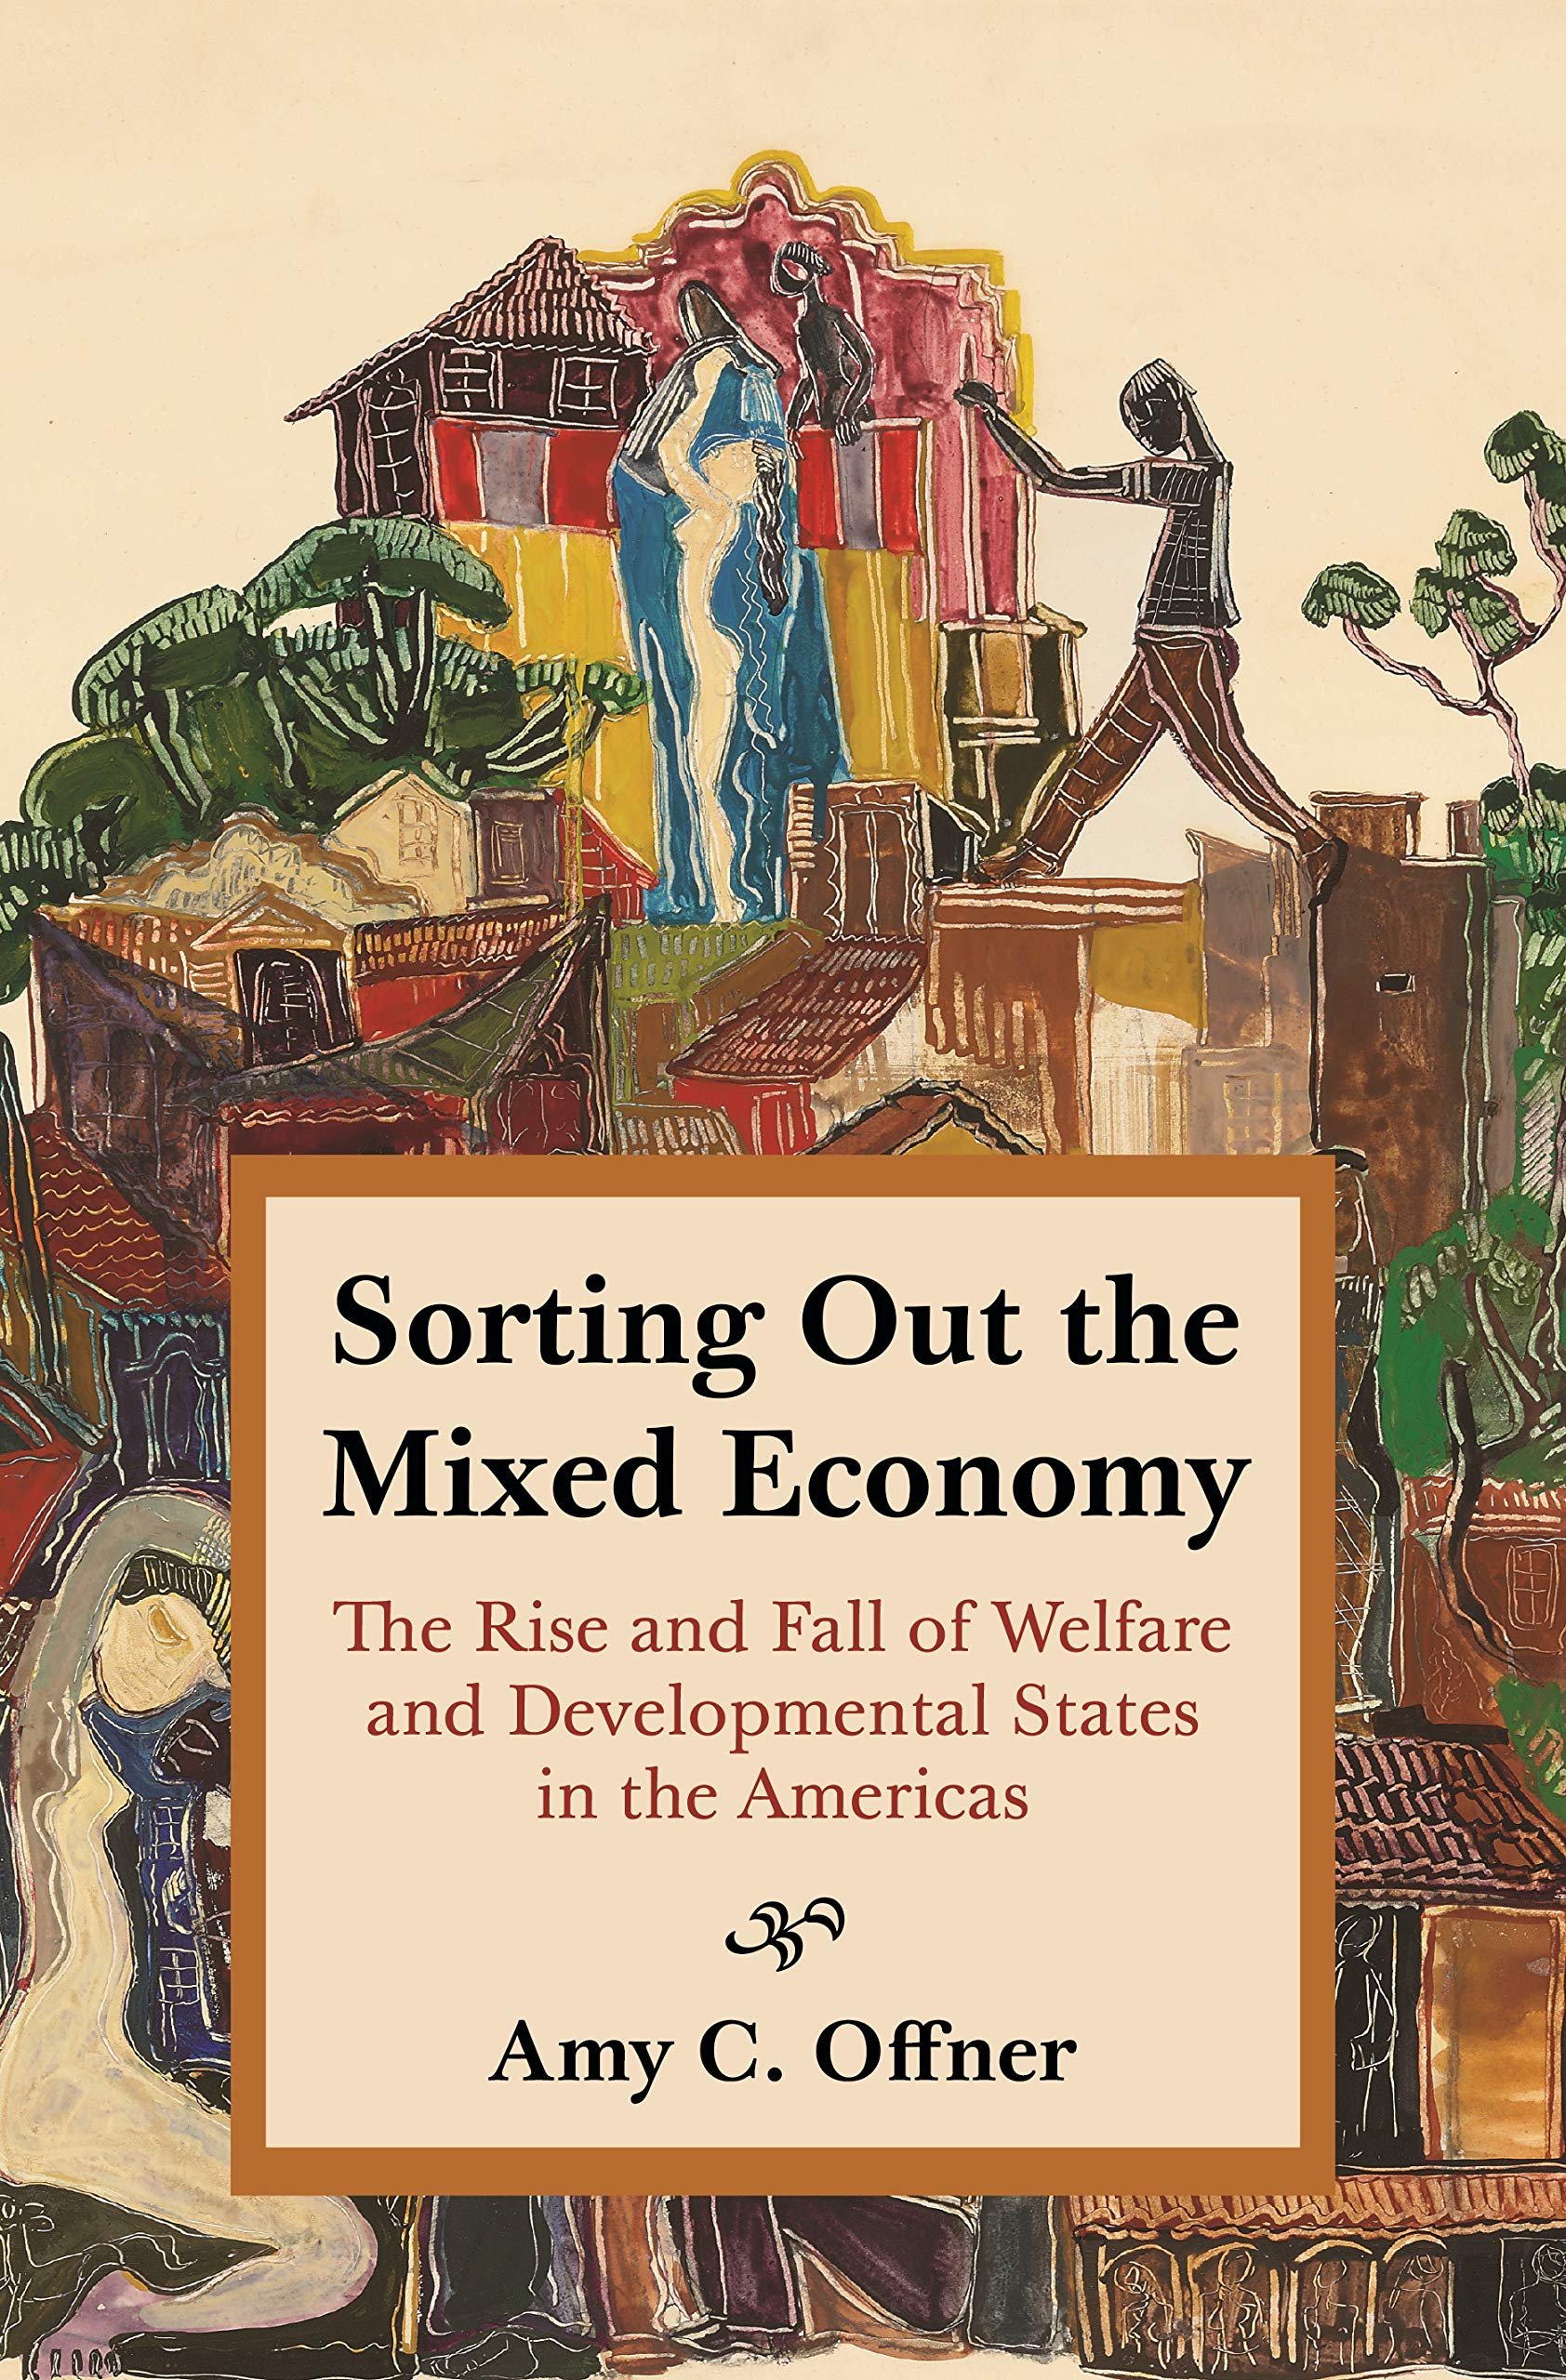 Sorting Out the Mixed Economy: The Rise and Fall of Welfare and Developmental States in the Americas (Histories of Economic Life): Offner, Professor Amy C.: 9780691190938: Amazon.com: Books